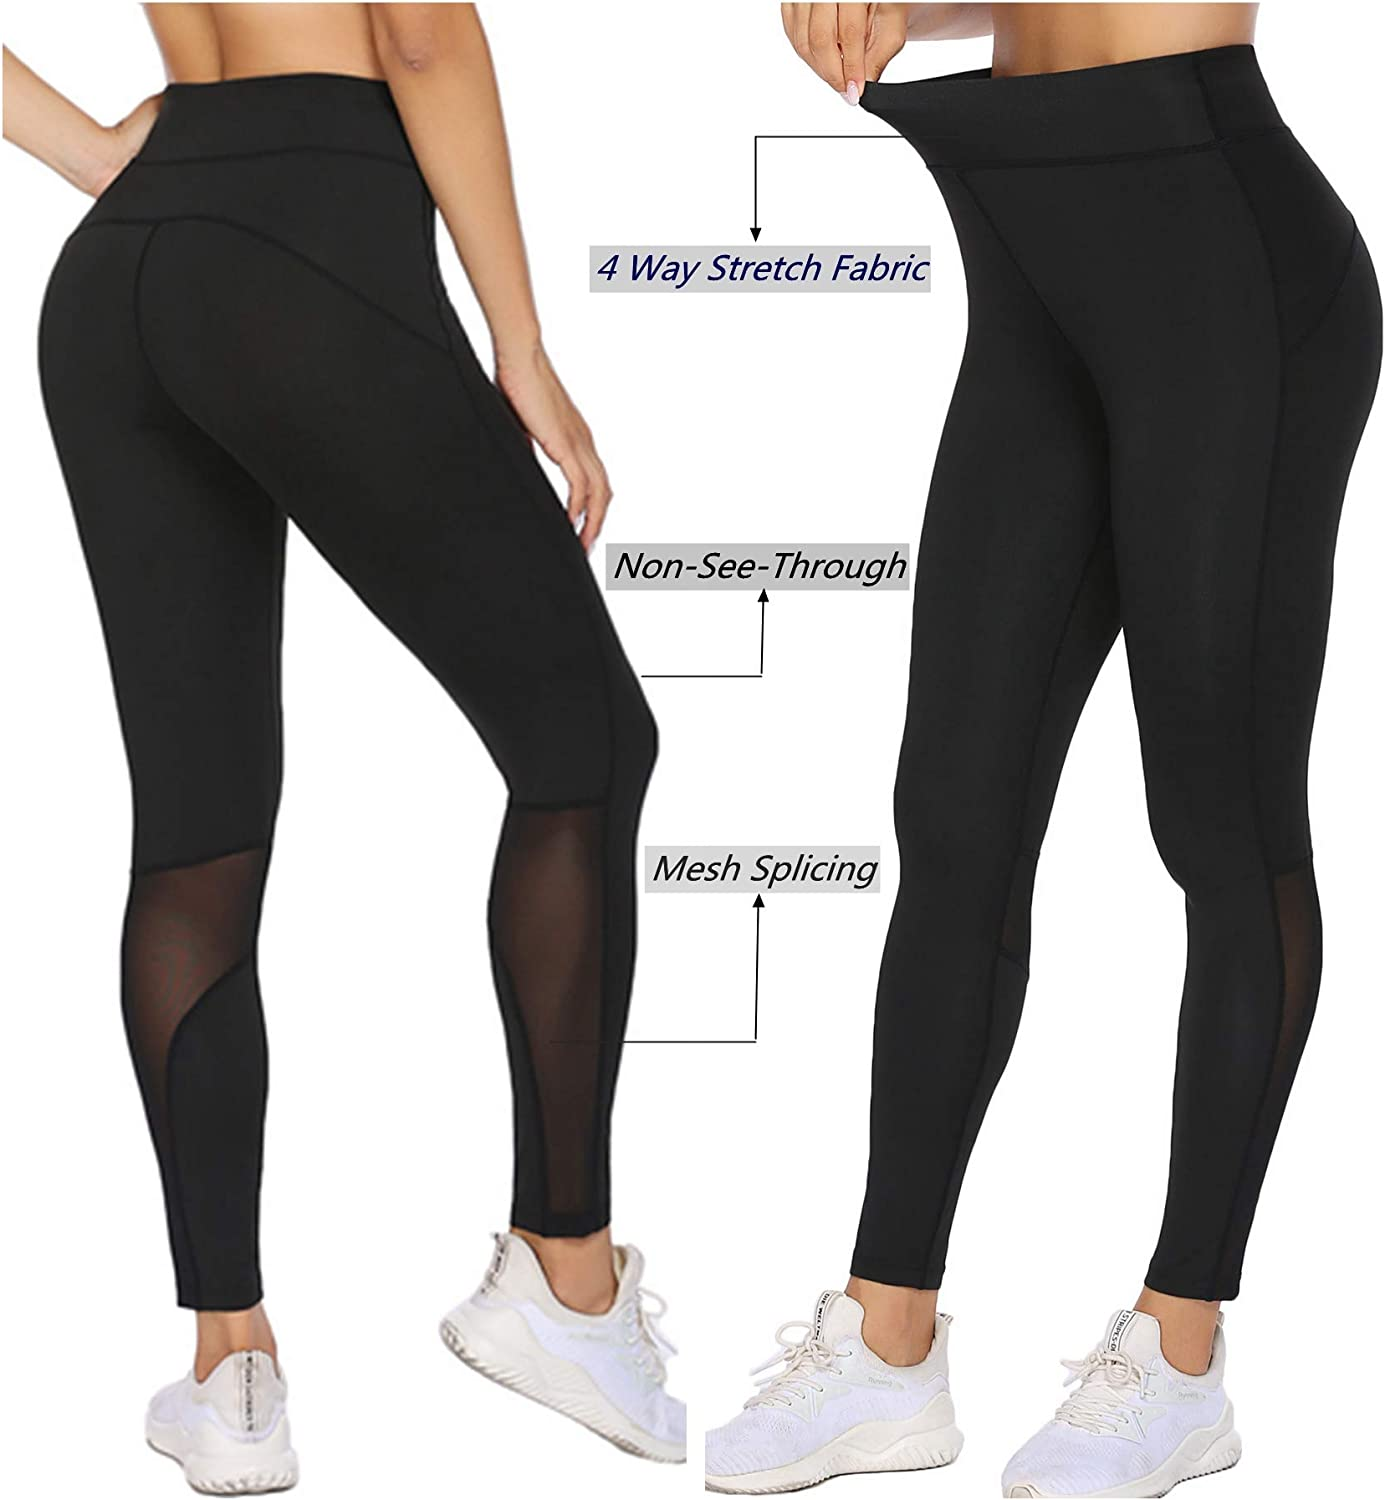 ADOME Women High Waist Yoga Pants Workout Running Leggings Full-Length Athletic Tights